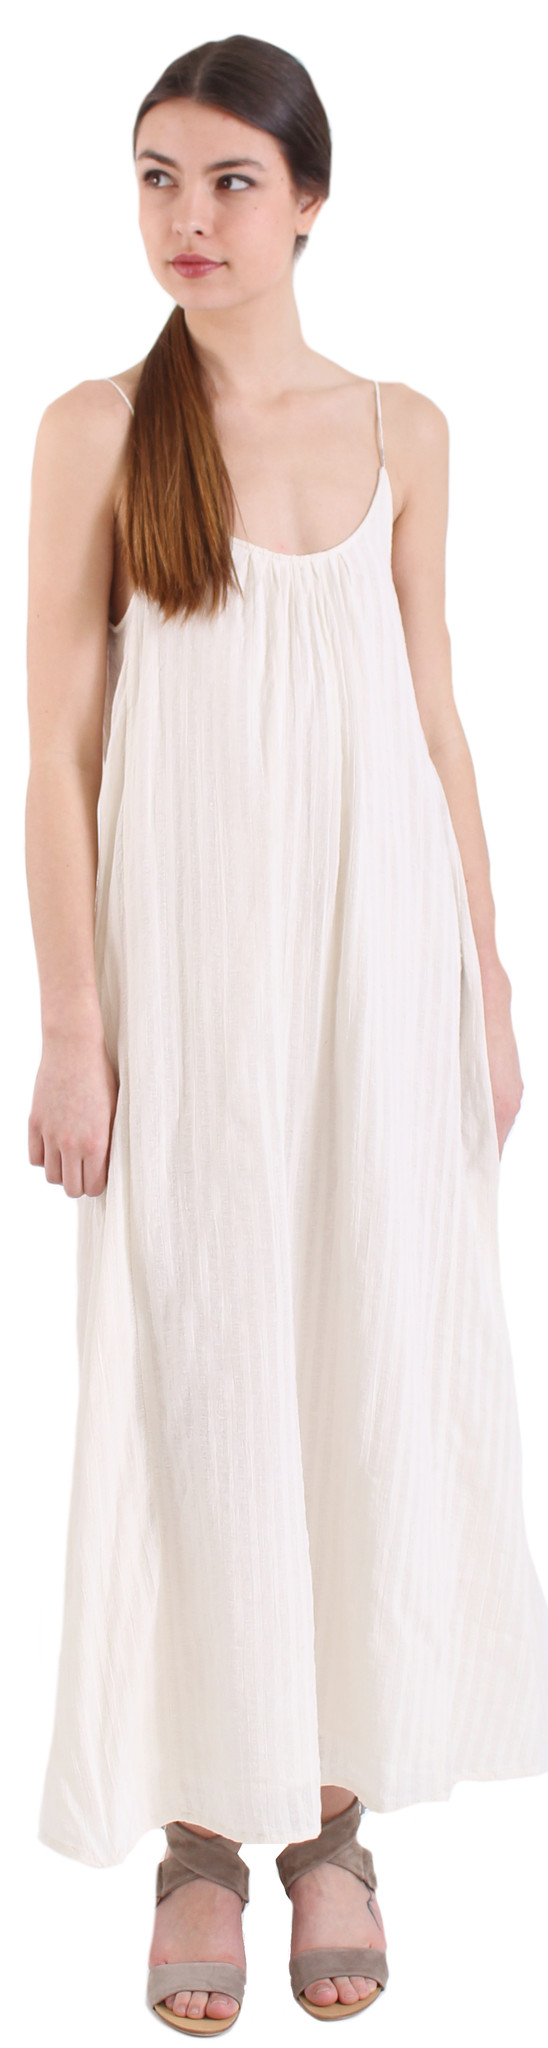 Swildens Oram Gauzy Maxi Dress